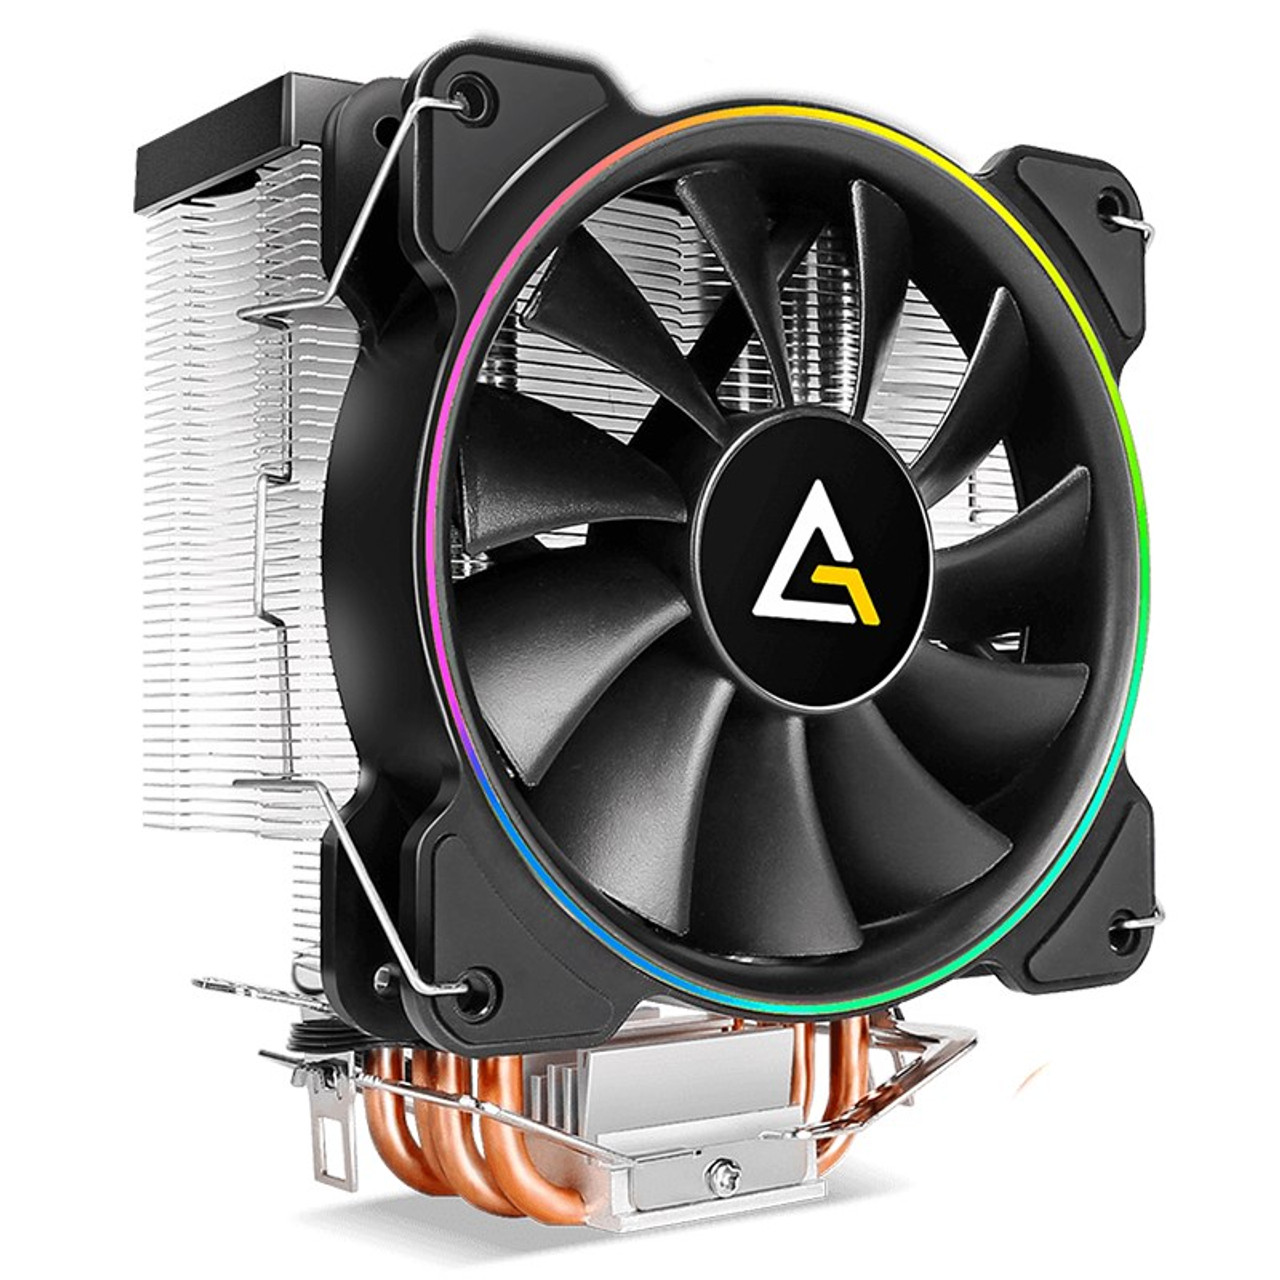 Product image for Antec A400 RGB CPU Air Cooler | CX Computer Superstore